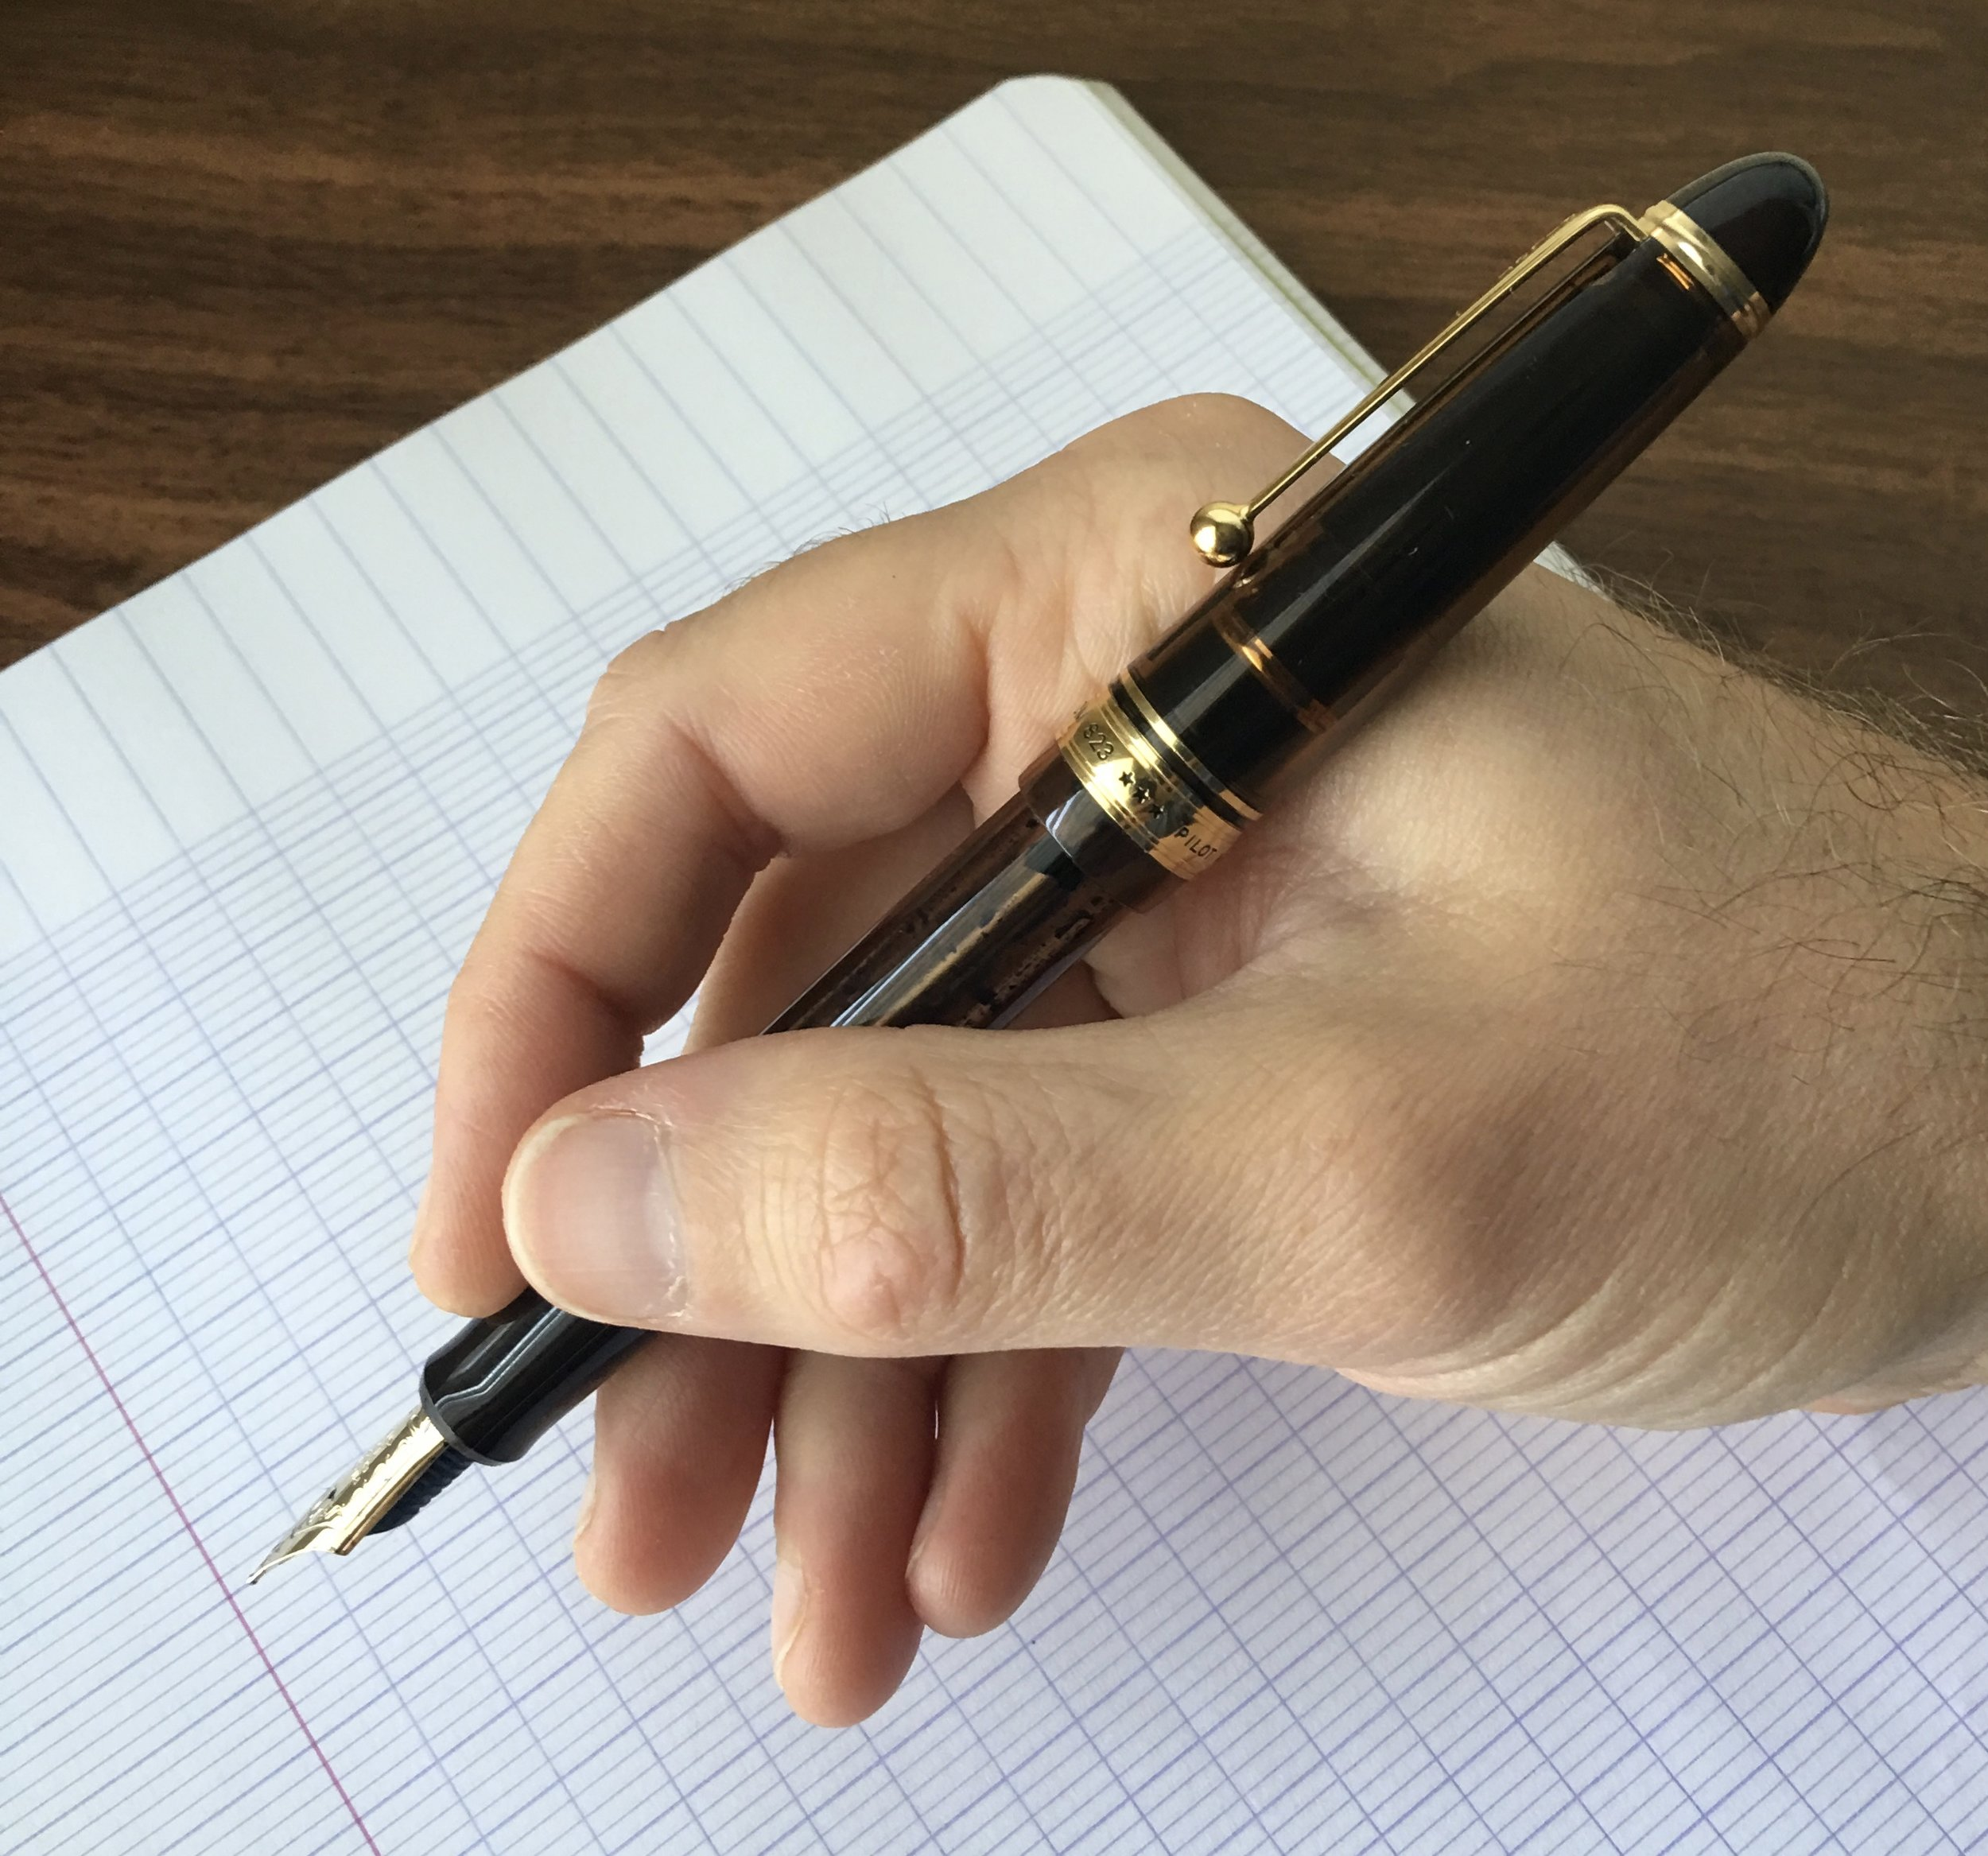 The Pilot Custom 823 Posted